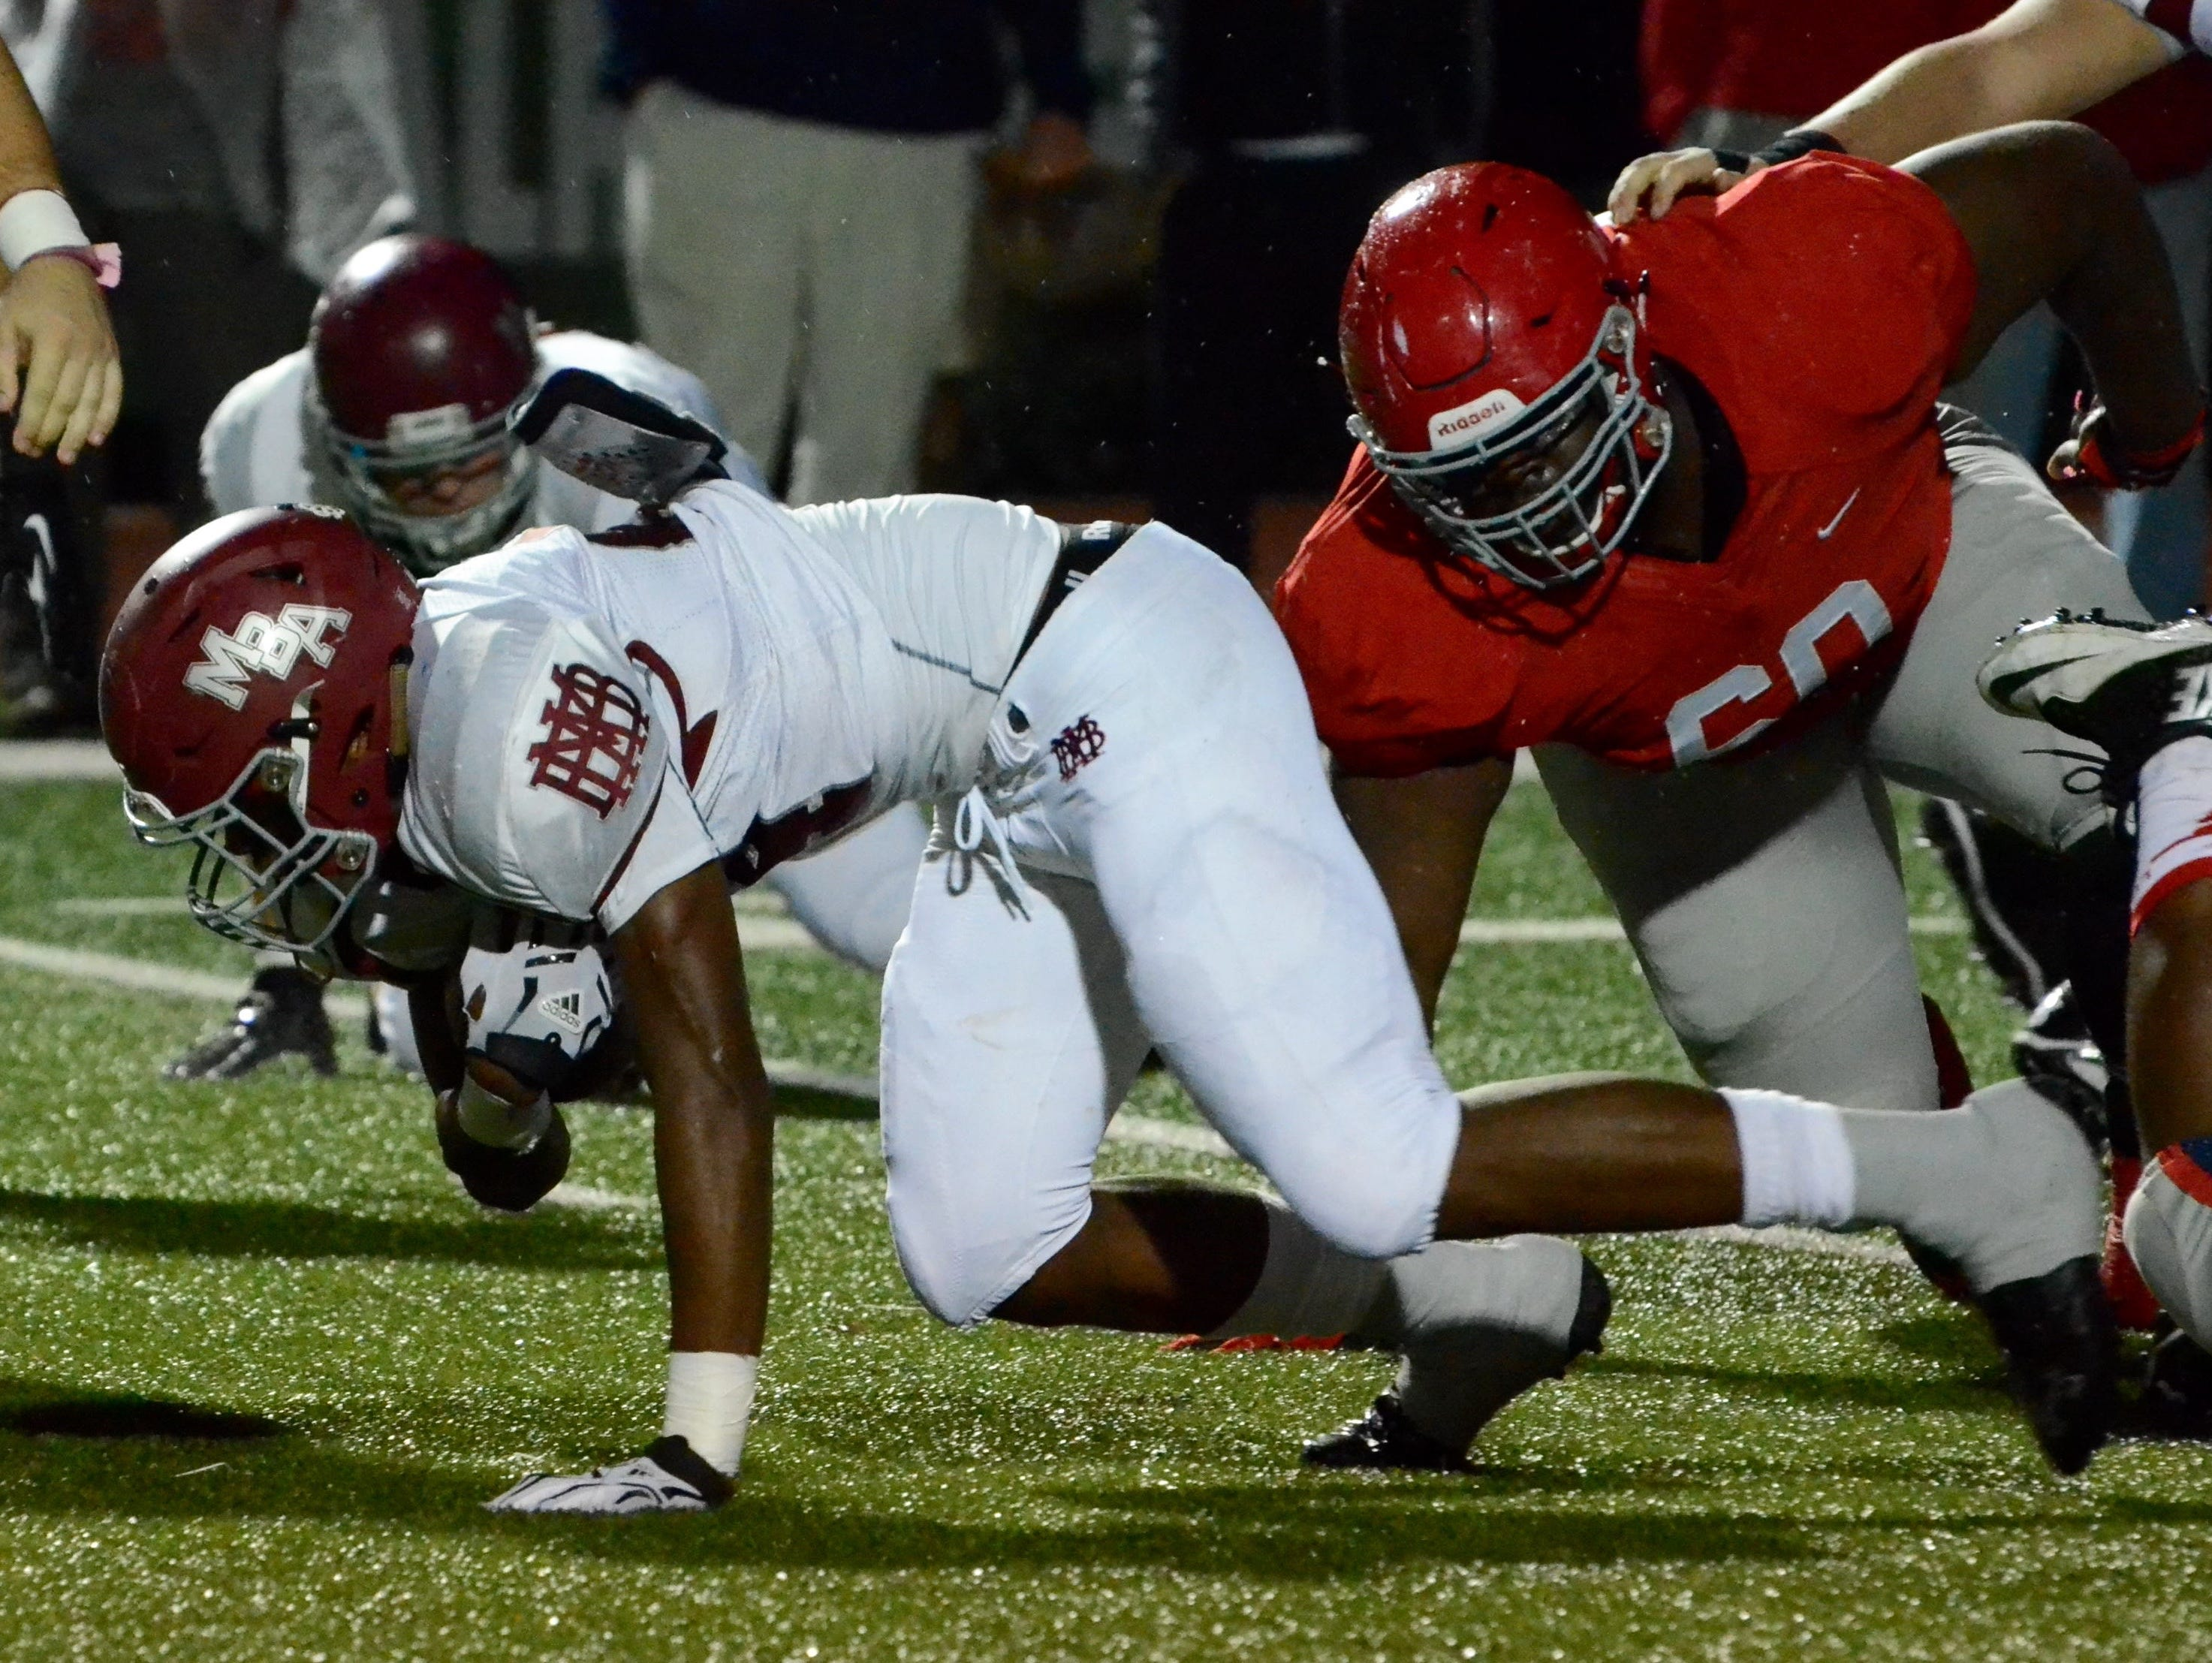 MBA running back Ty Chandler fights for extra yardage Friday against Brentwood Academy.